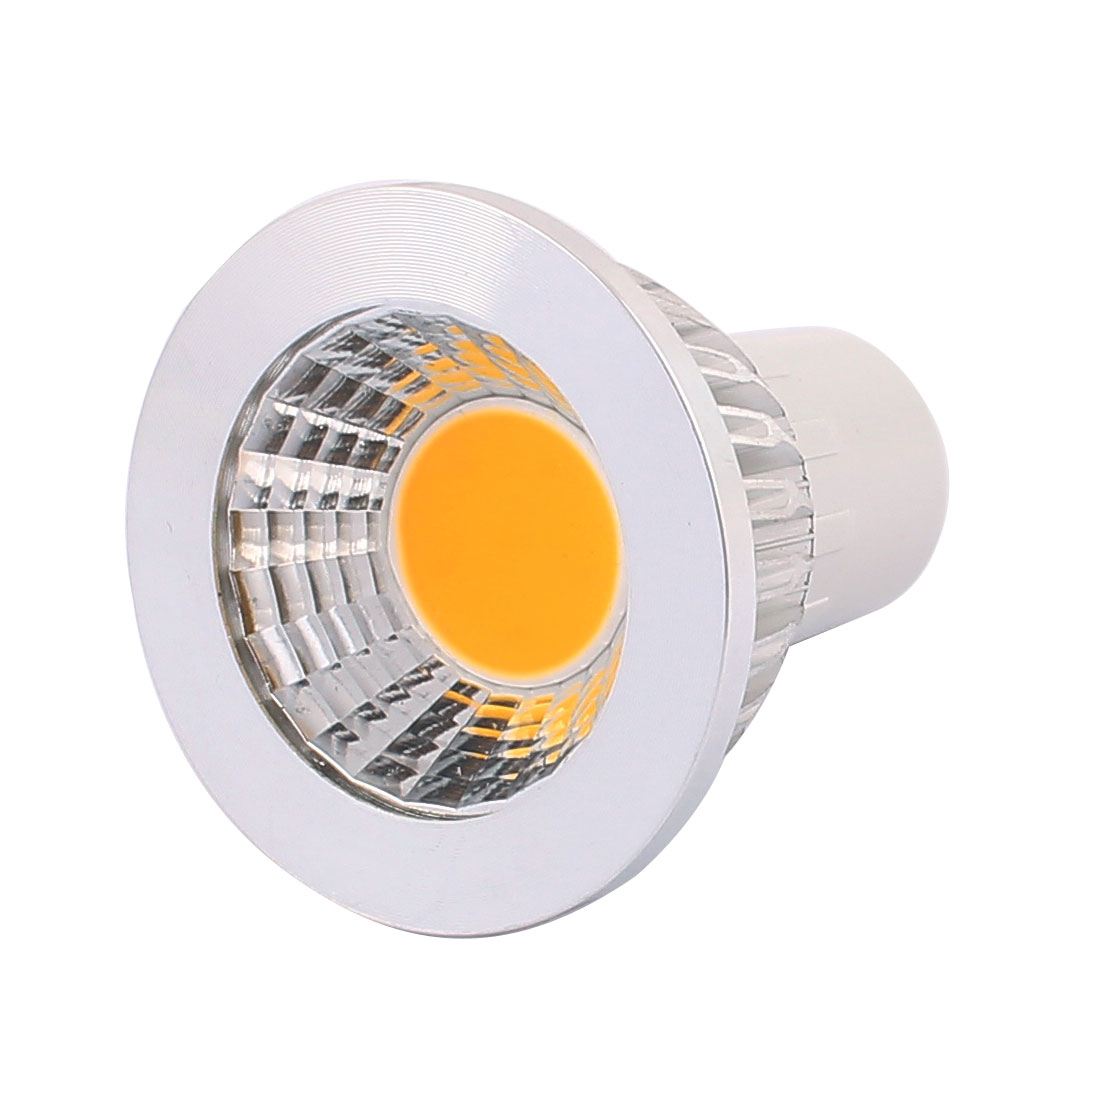 AC85-265V 3W GU5.3 Base COB LED Spotlight Lamp Bulb Downlight Warm White